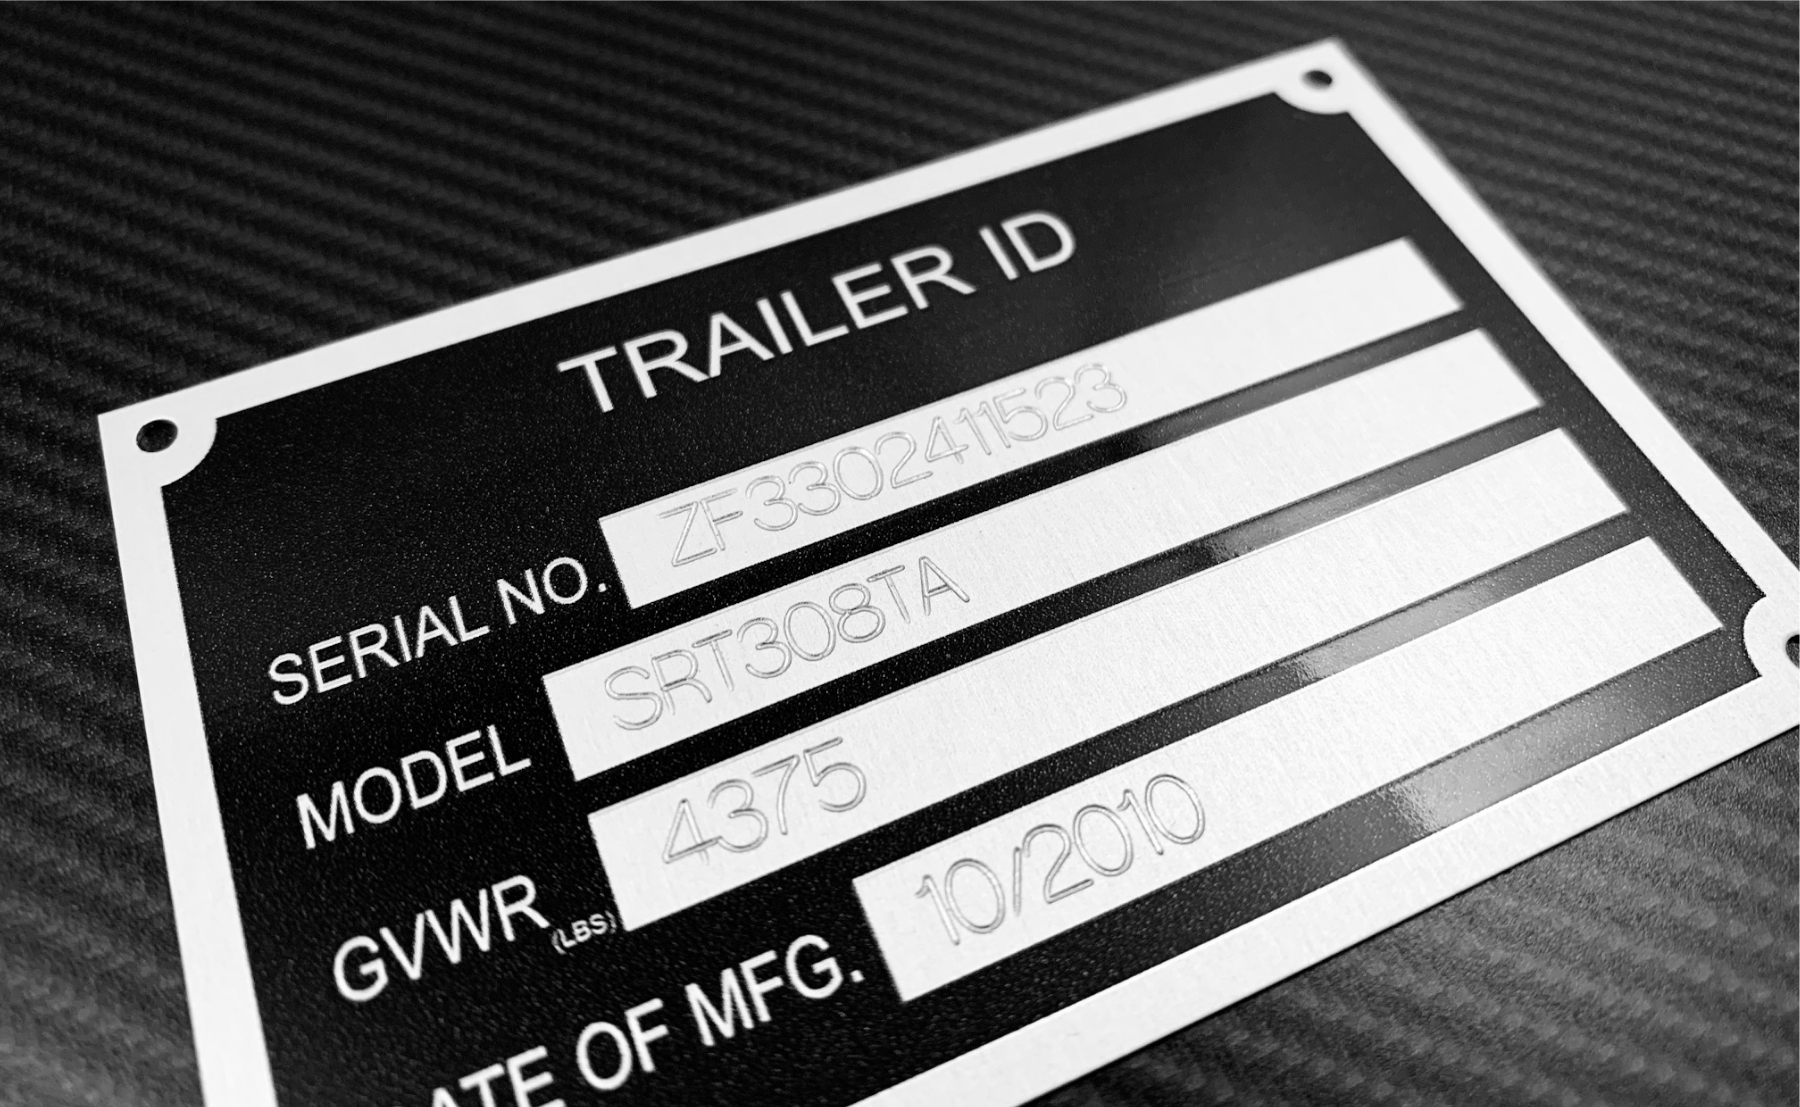 Trailer ID Identification Tag Plate